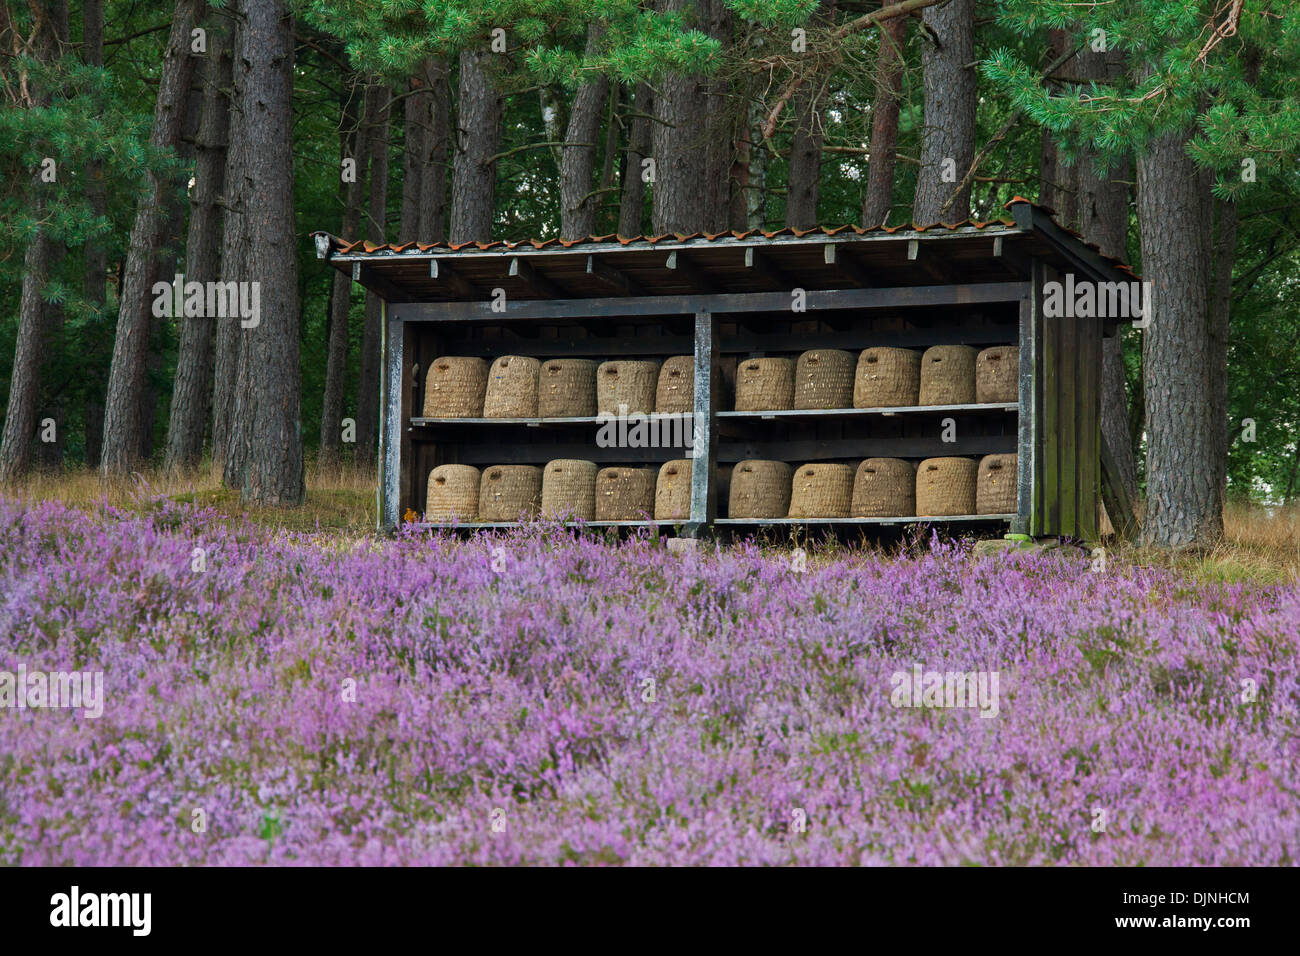 Bee hives / beehives / skeps for honeybees in shelter of apiary in the Lüneburg Heath / Lunenburg Heathland, Saxony, Germany - Stock Image